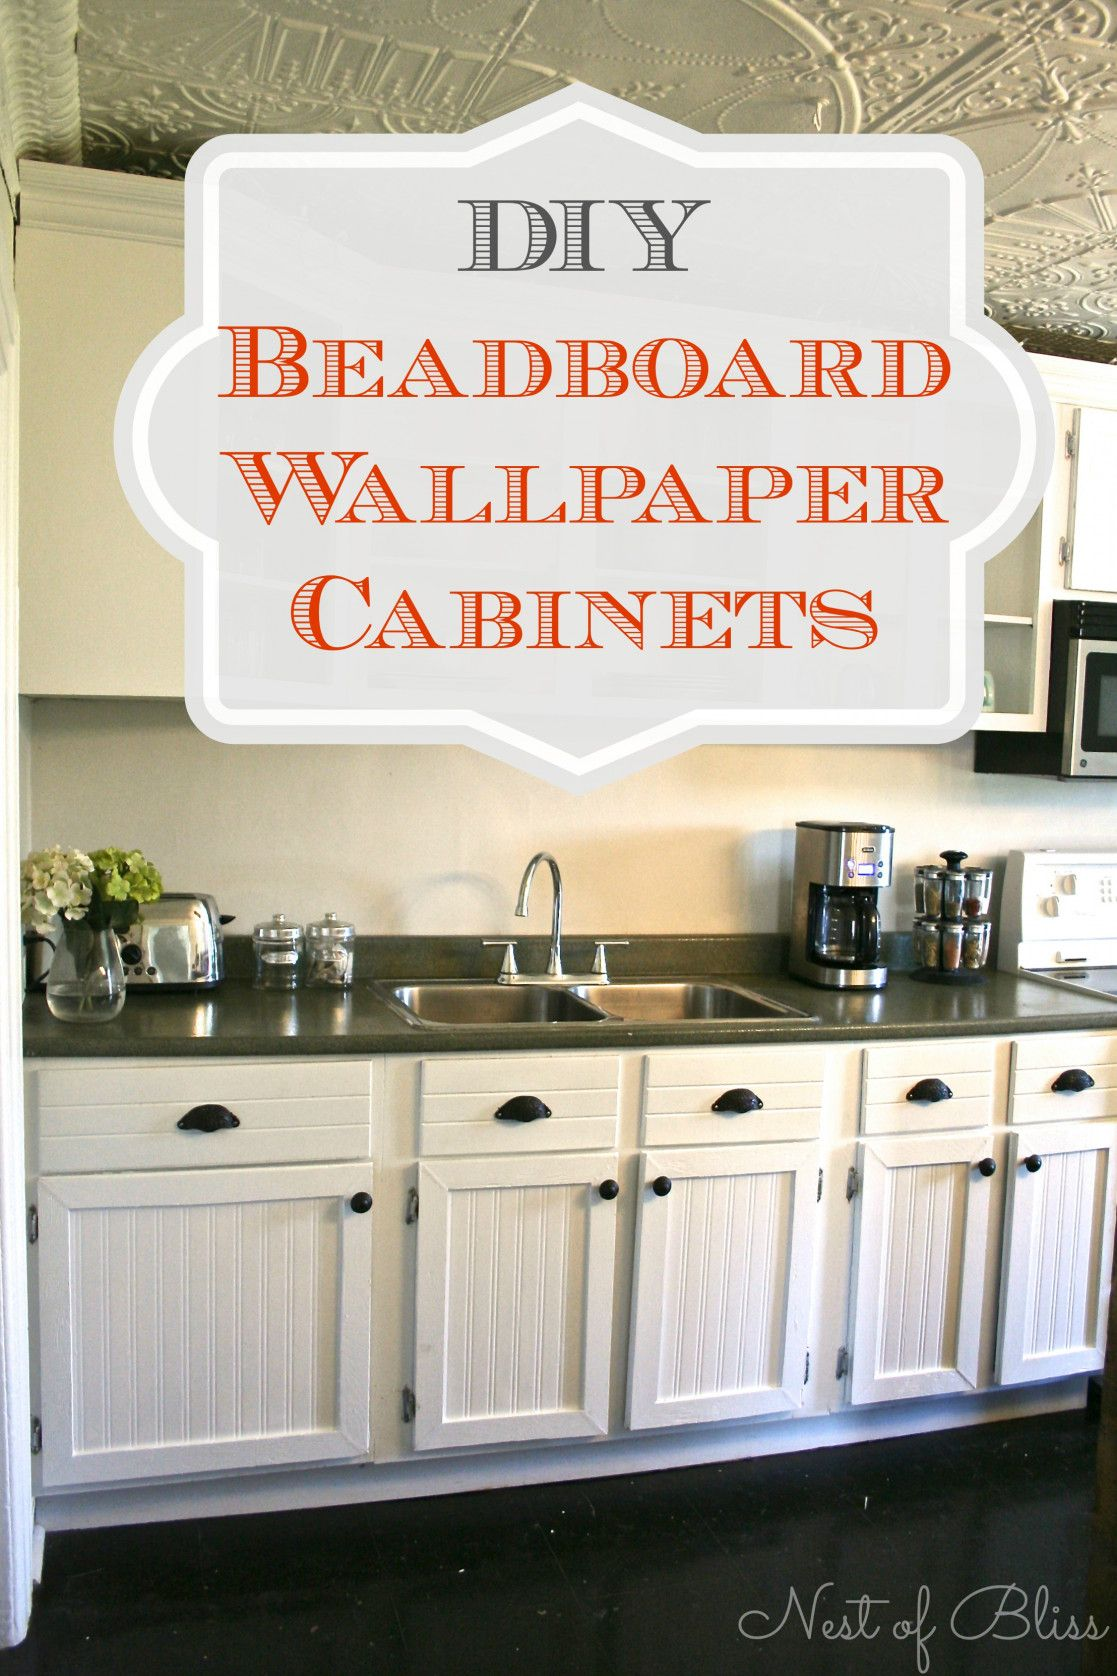 55 Refacing Cabinet Doors With Beadboard Kitchen Cabinets Storage Ideas Check More At Http